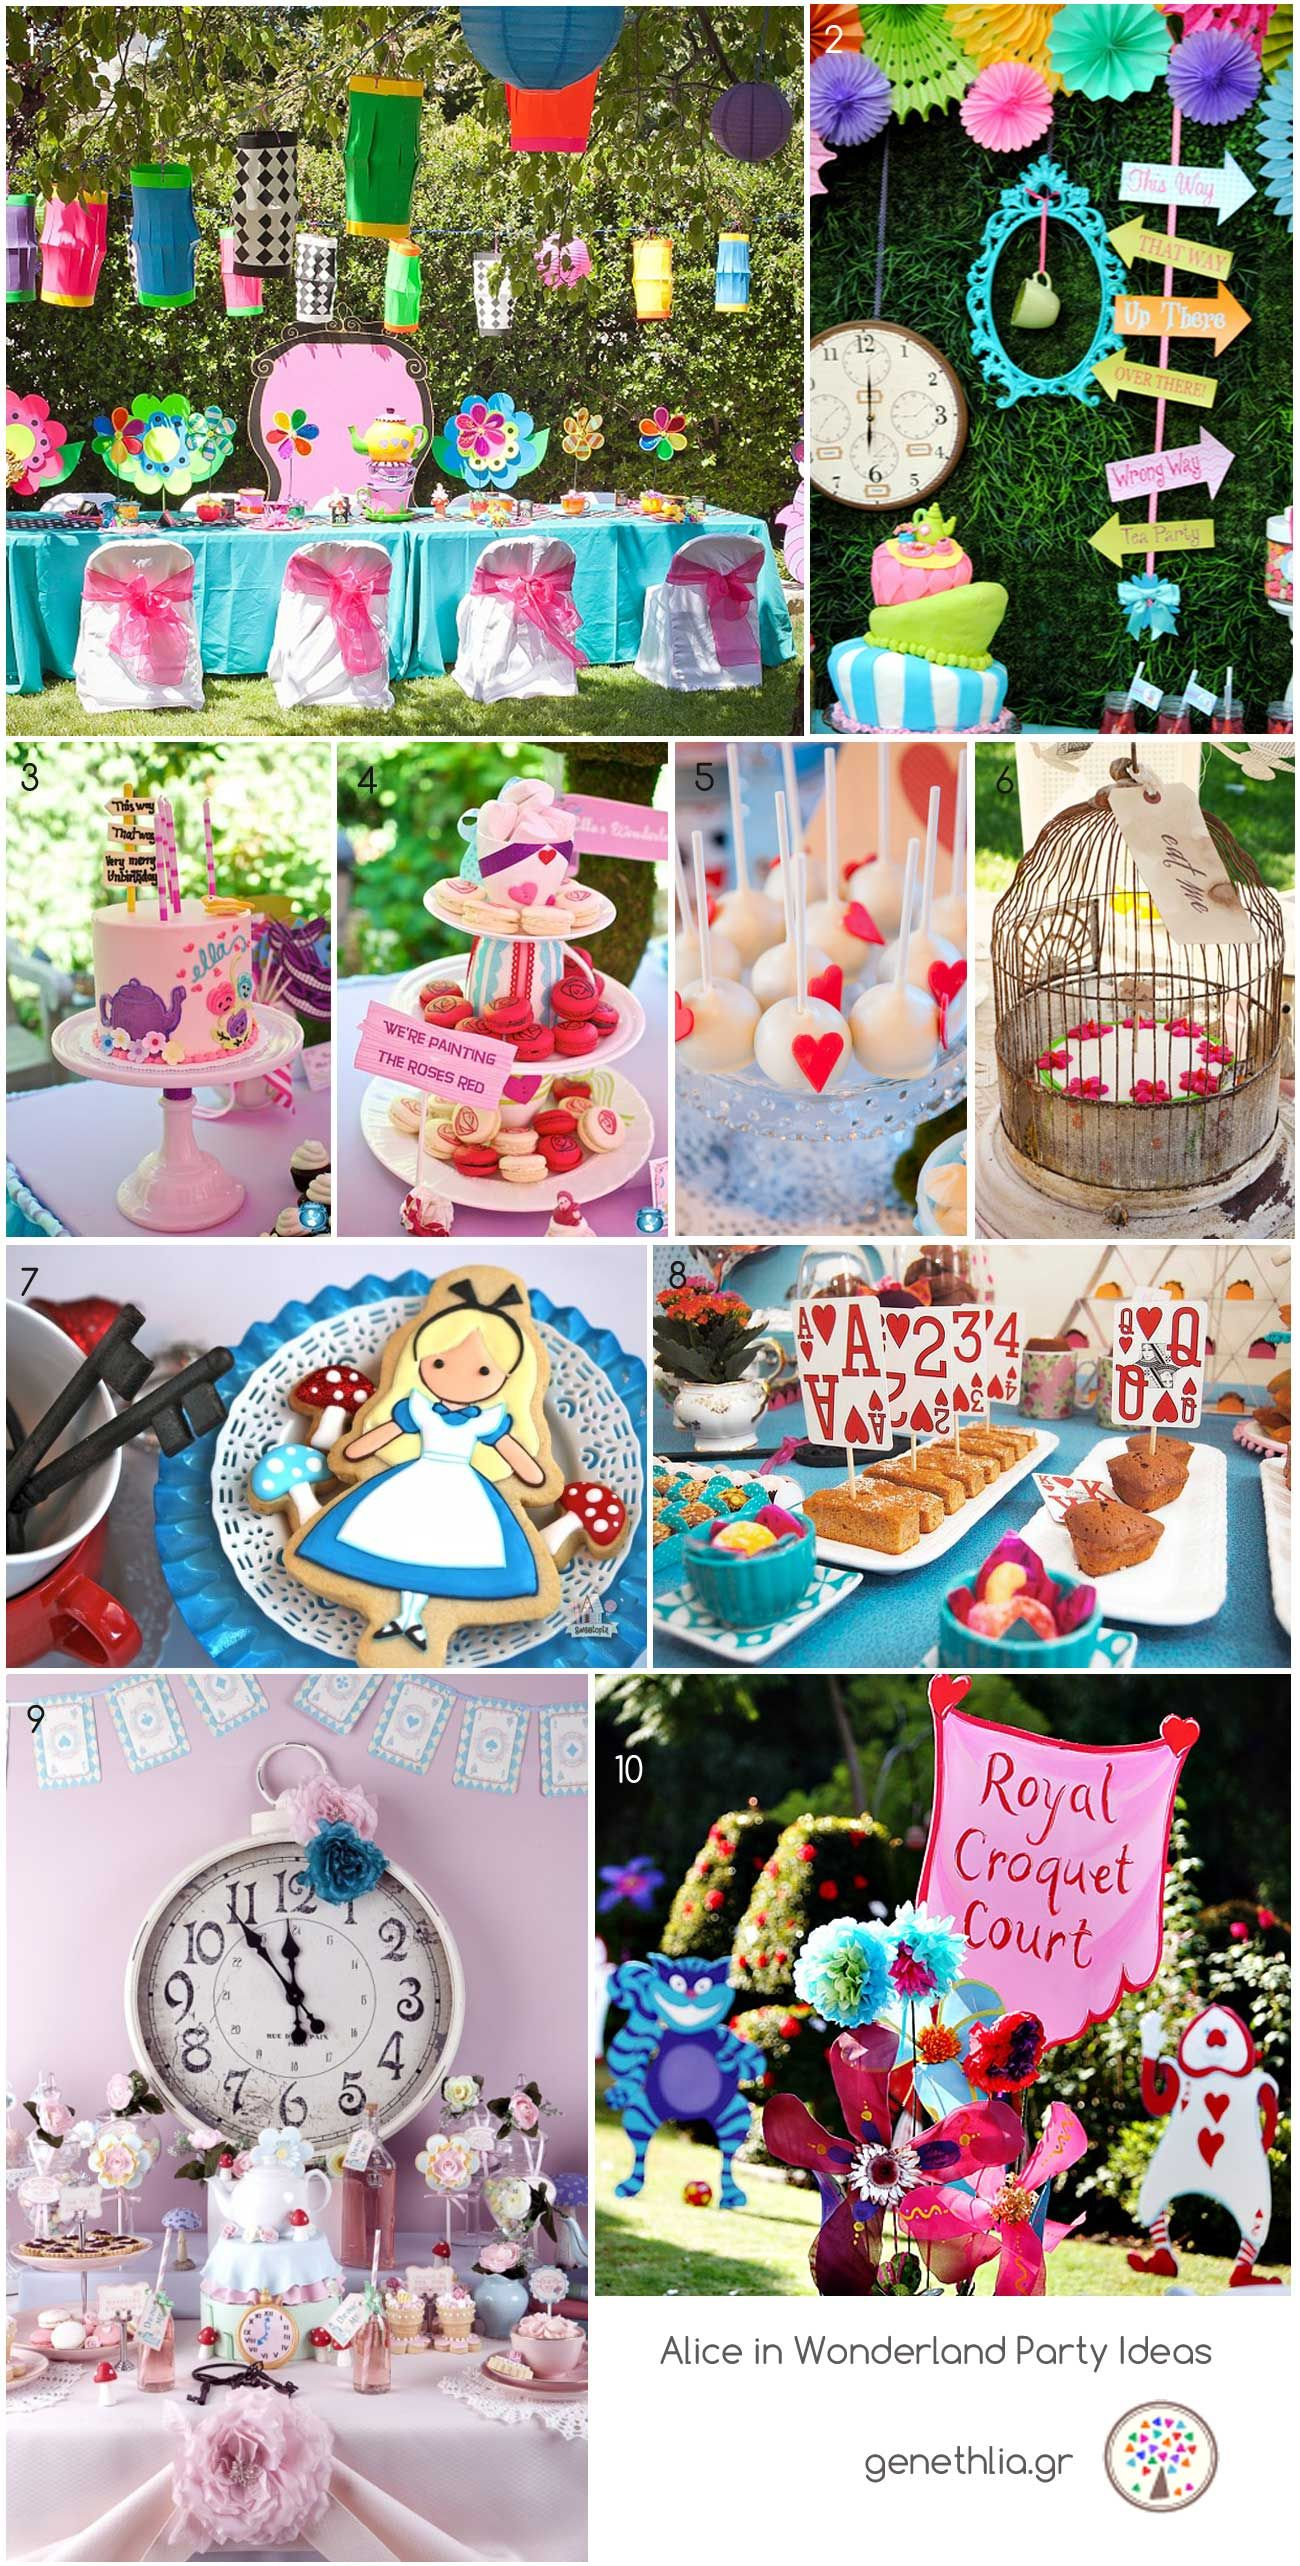 Alice in Wonderland Party Ideas! & Alice in Wonderland Party Ideas! | Party Themes | Pinterest ...